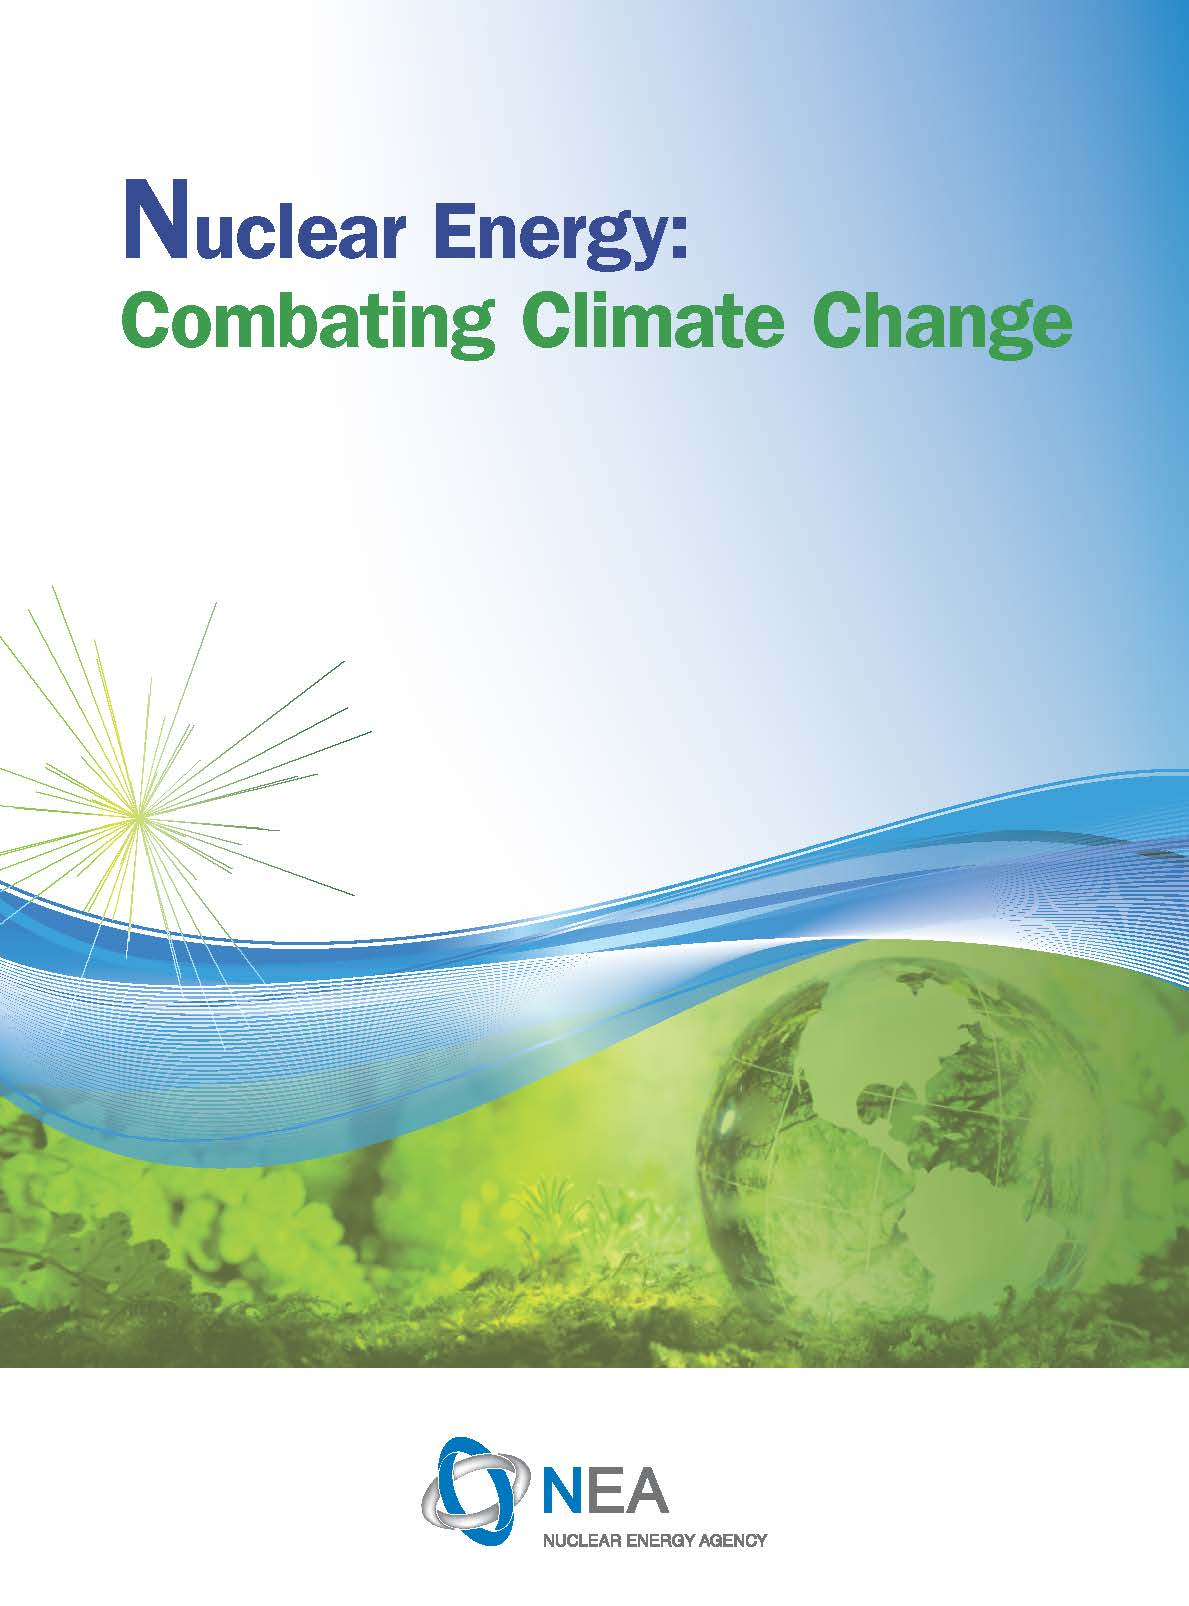 Nuclear Energy: Combating Climate Change